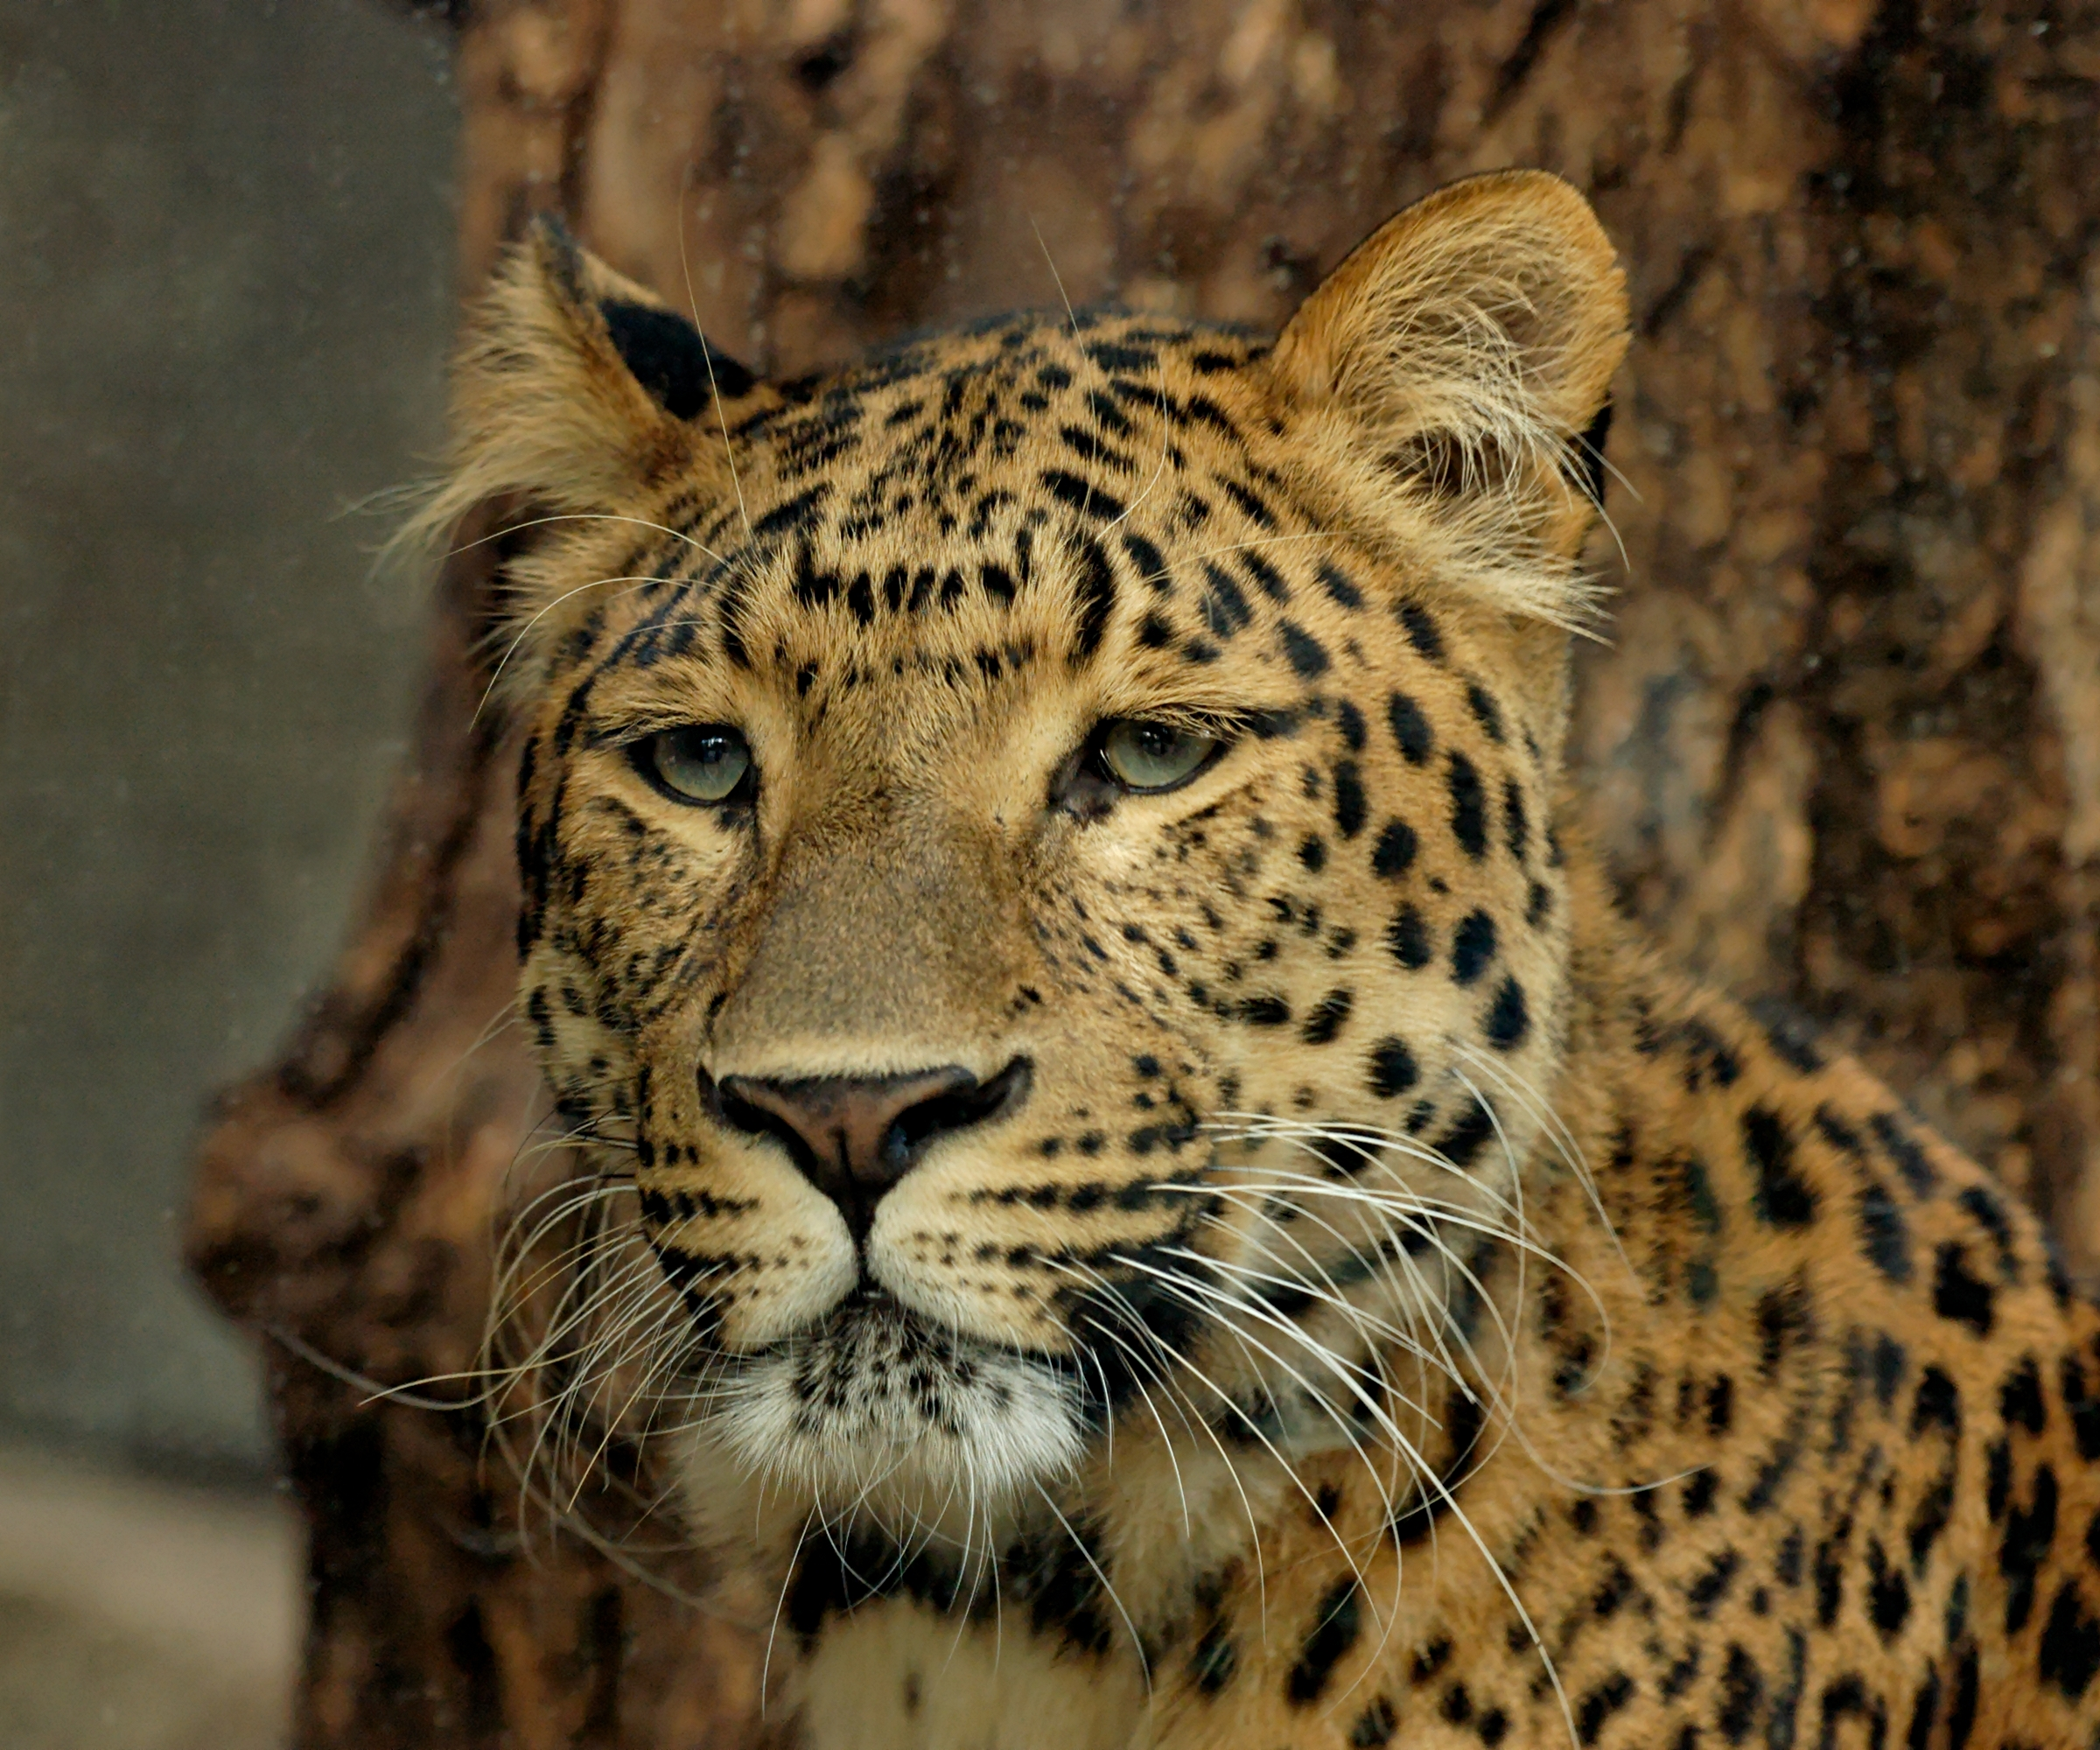 African leopard - By Marie-Lan Nguyen (Own work) [Public domain], via Wikimedia Commons